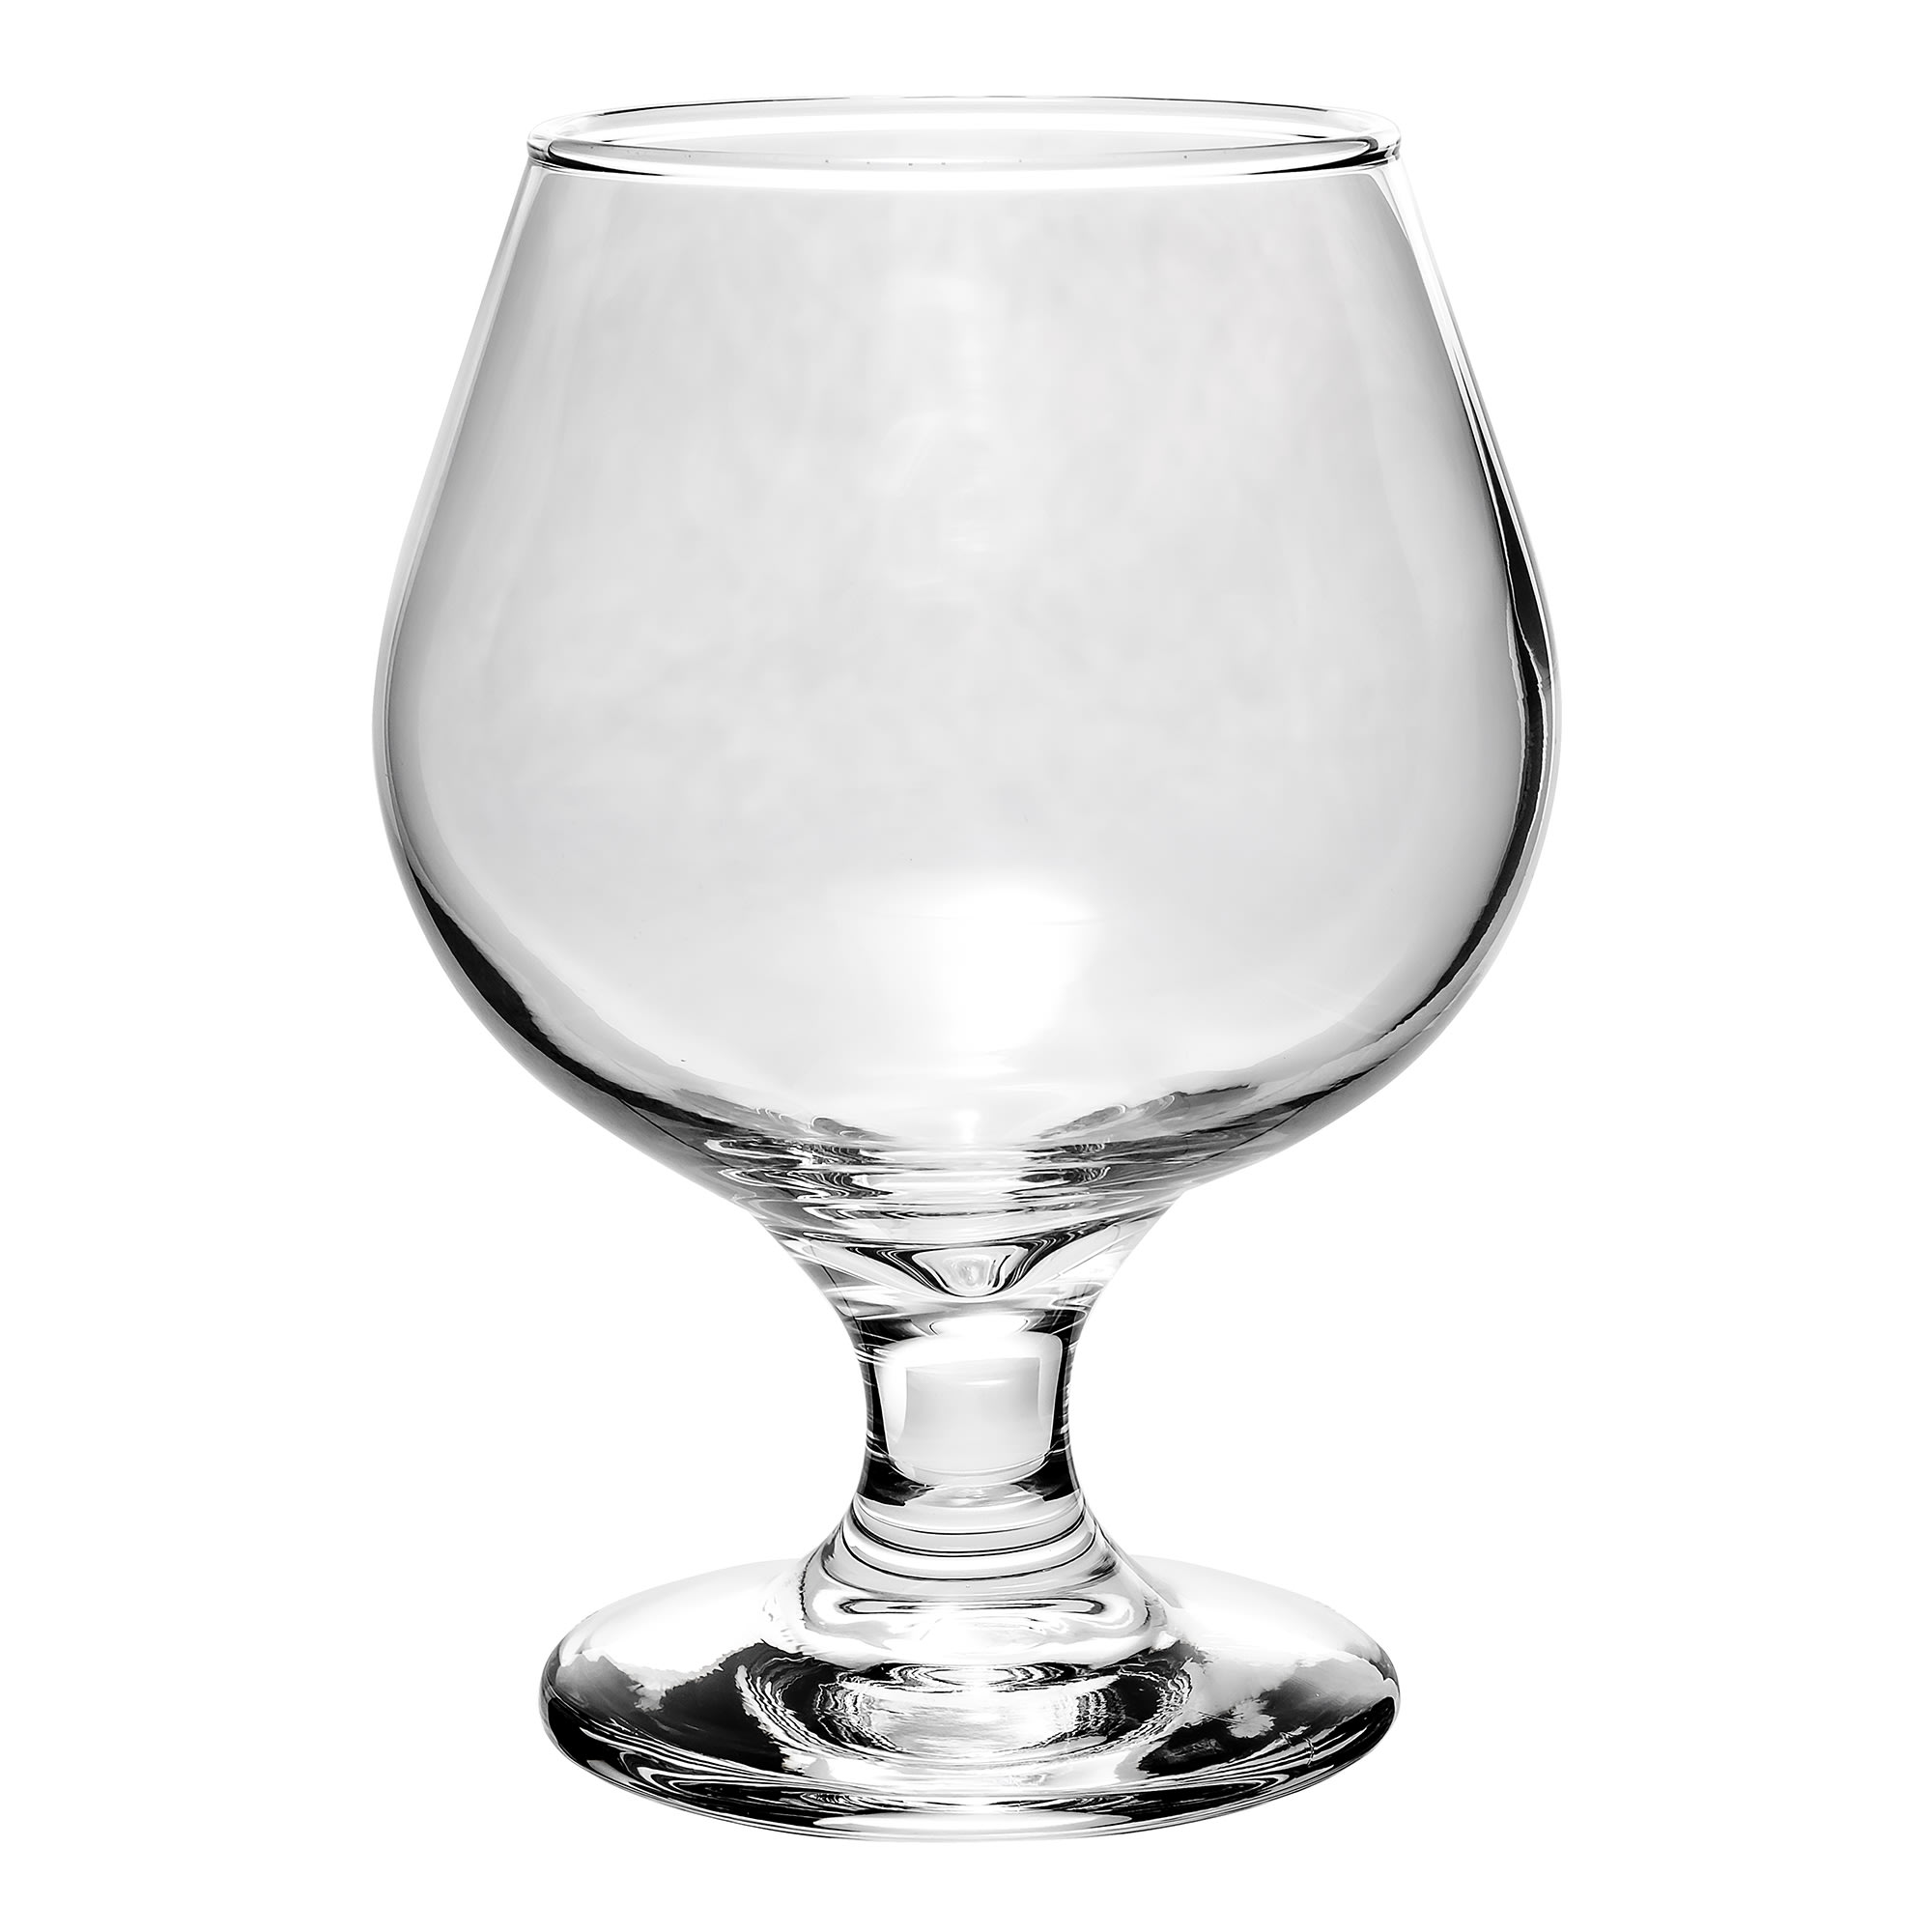 Libbey 3704 9.25 oz Embassy Brandy Glass - Safedge Rim & Foot Guarantee